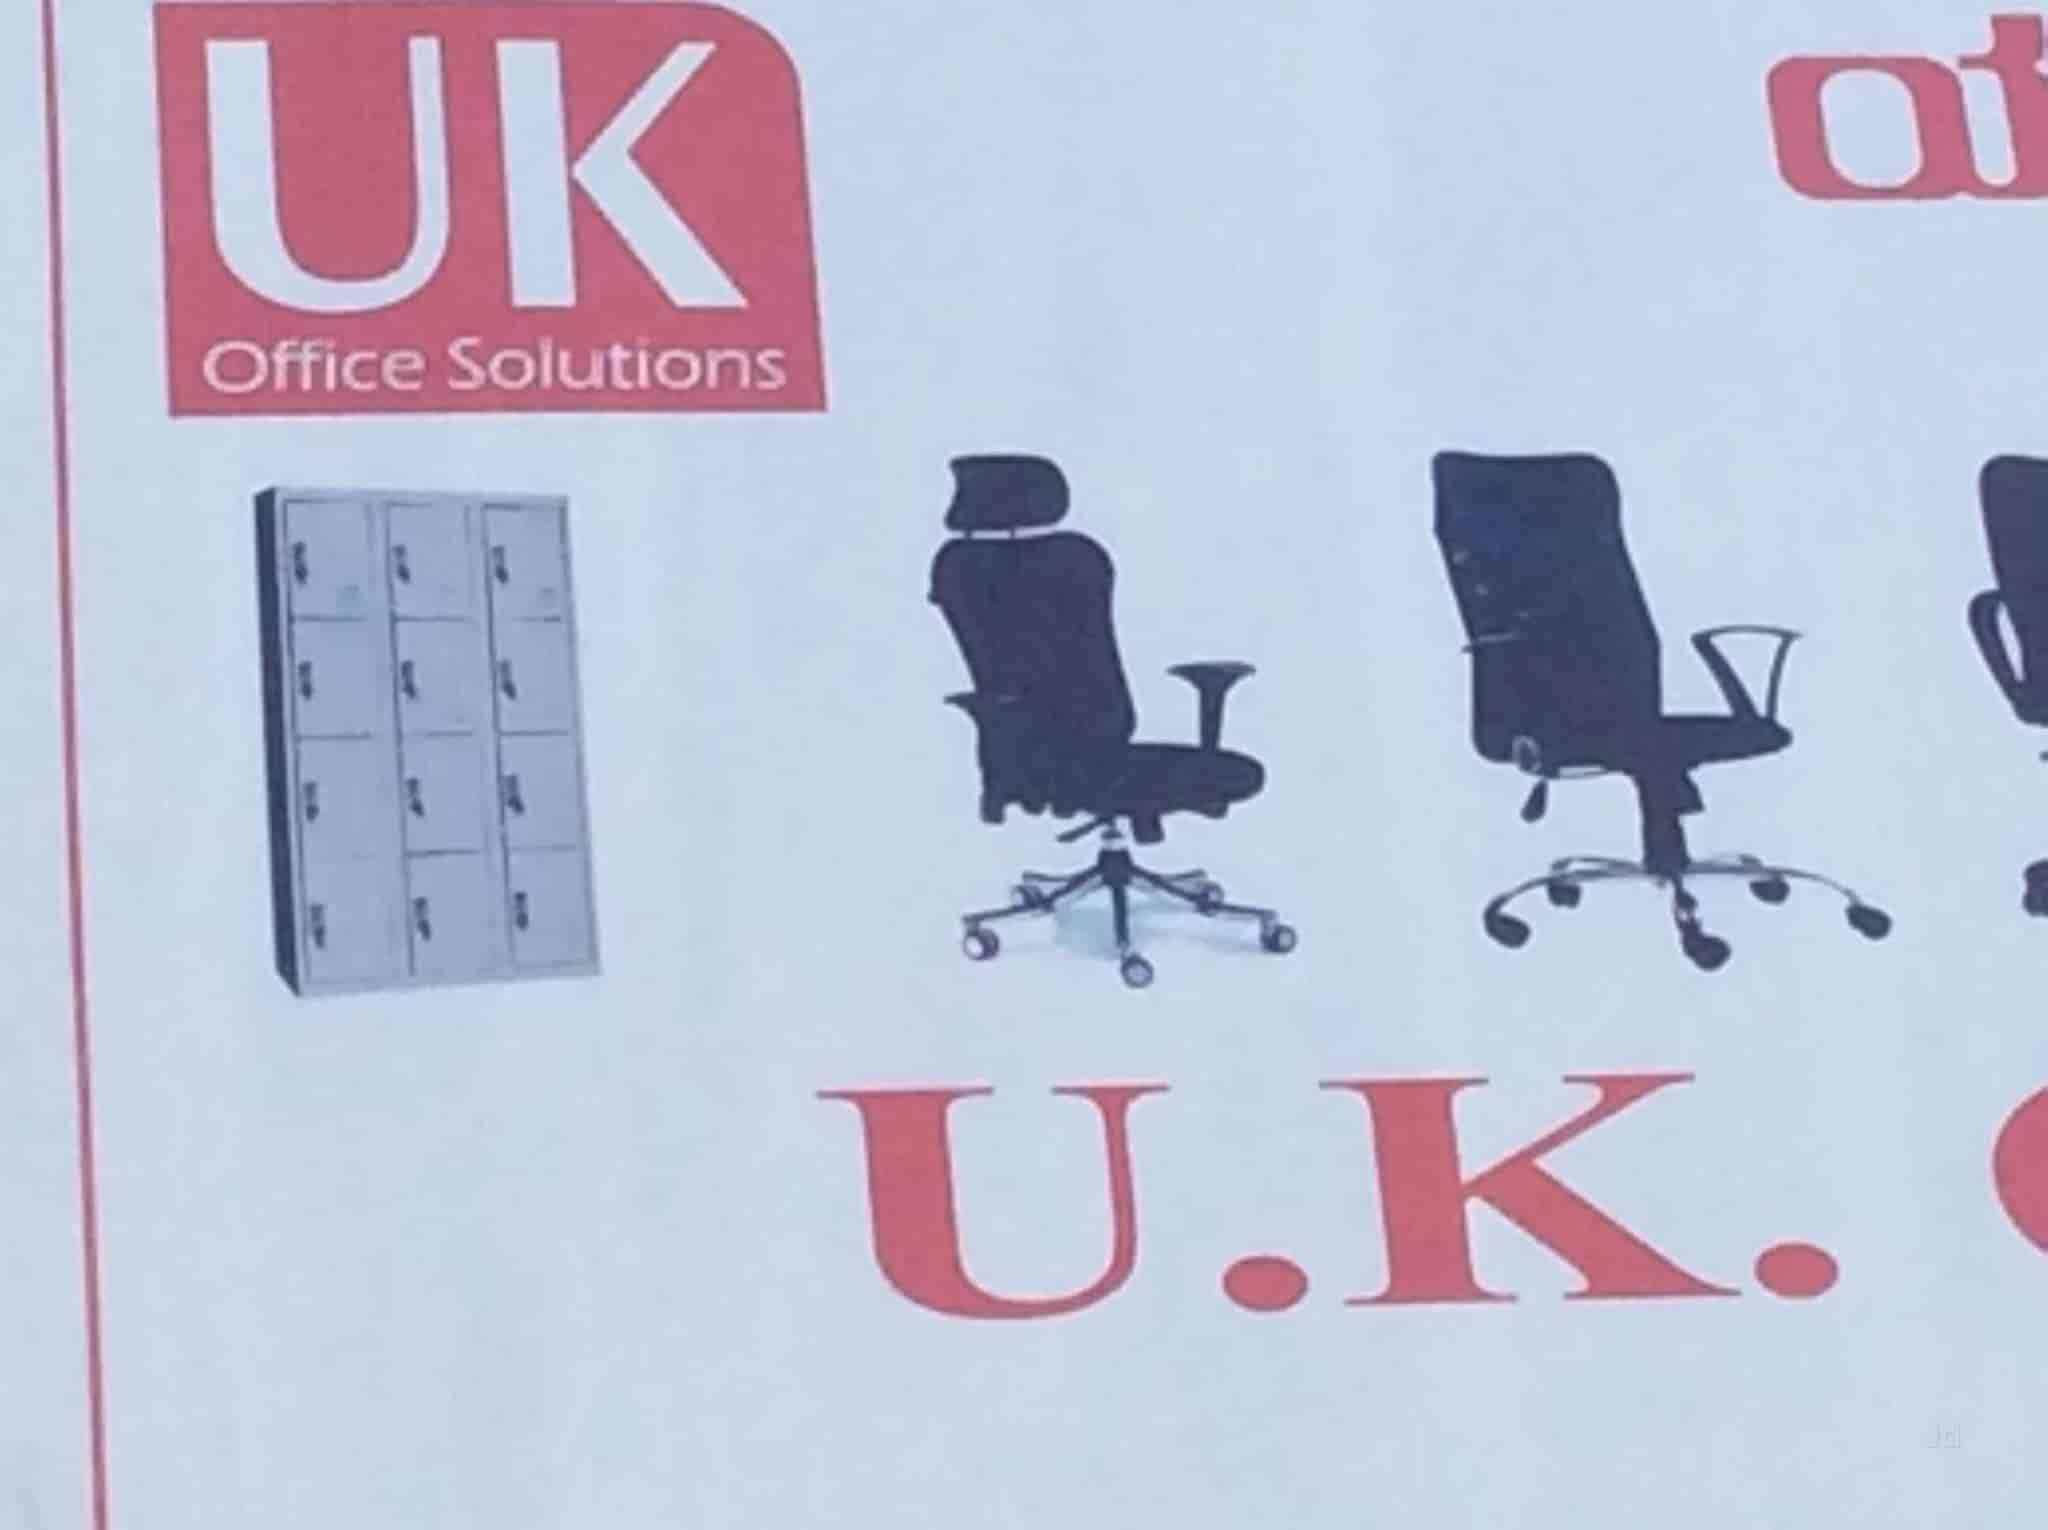 u k office solutions photos kr mohalla mysore pictures images